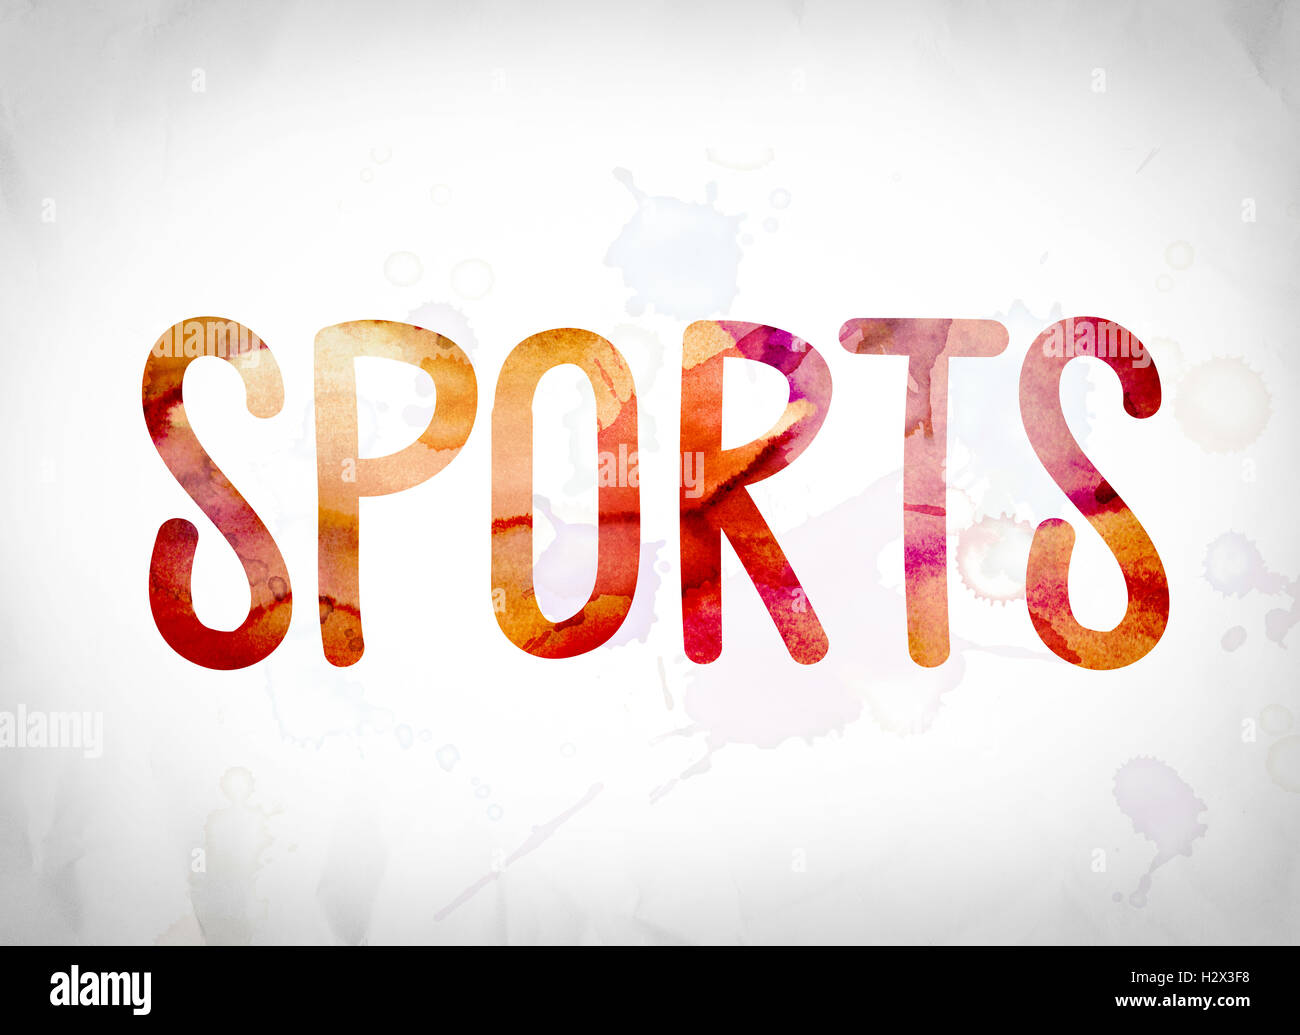 The Word Sports Written In Watercolor Washes Over A